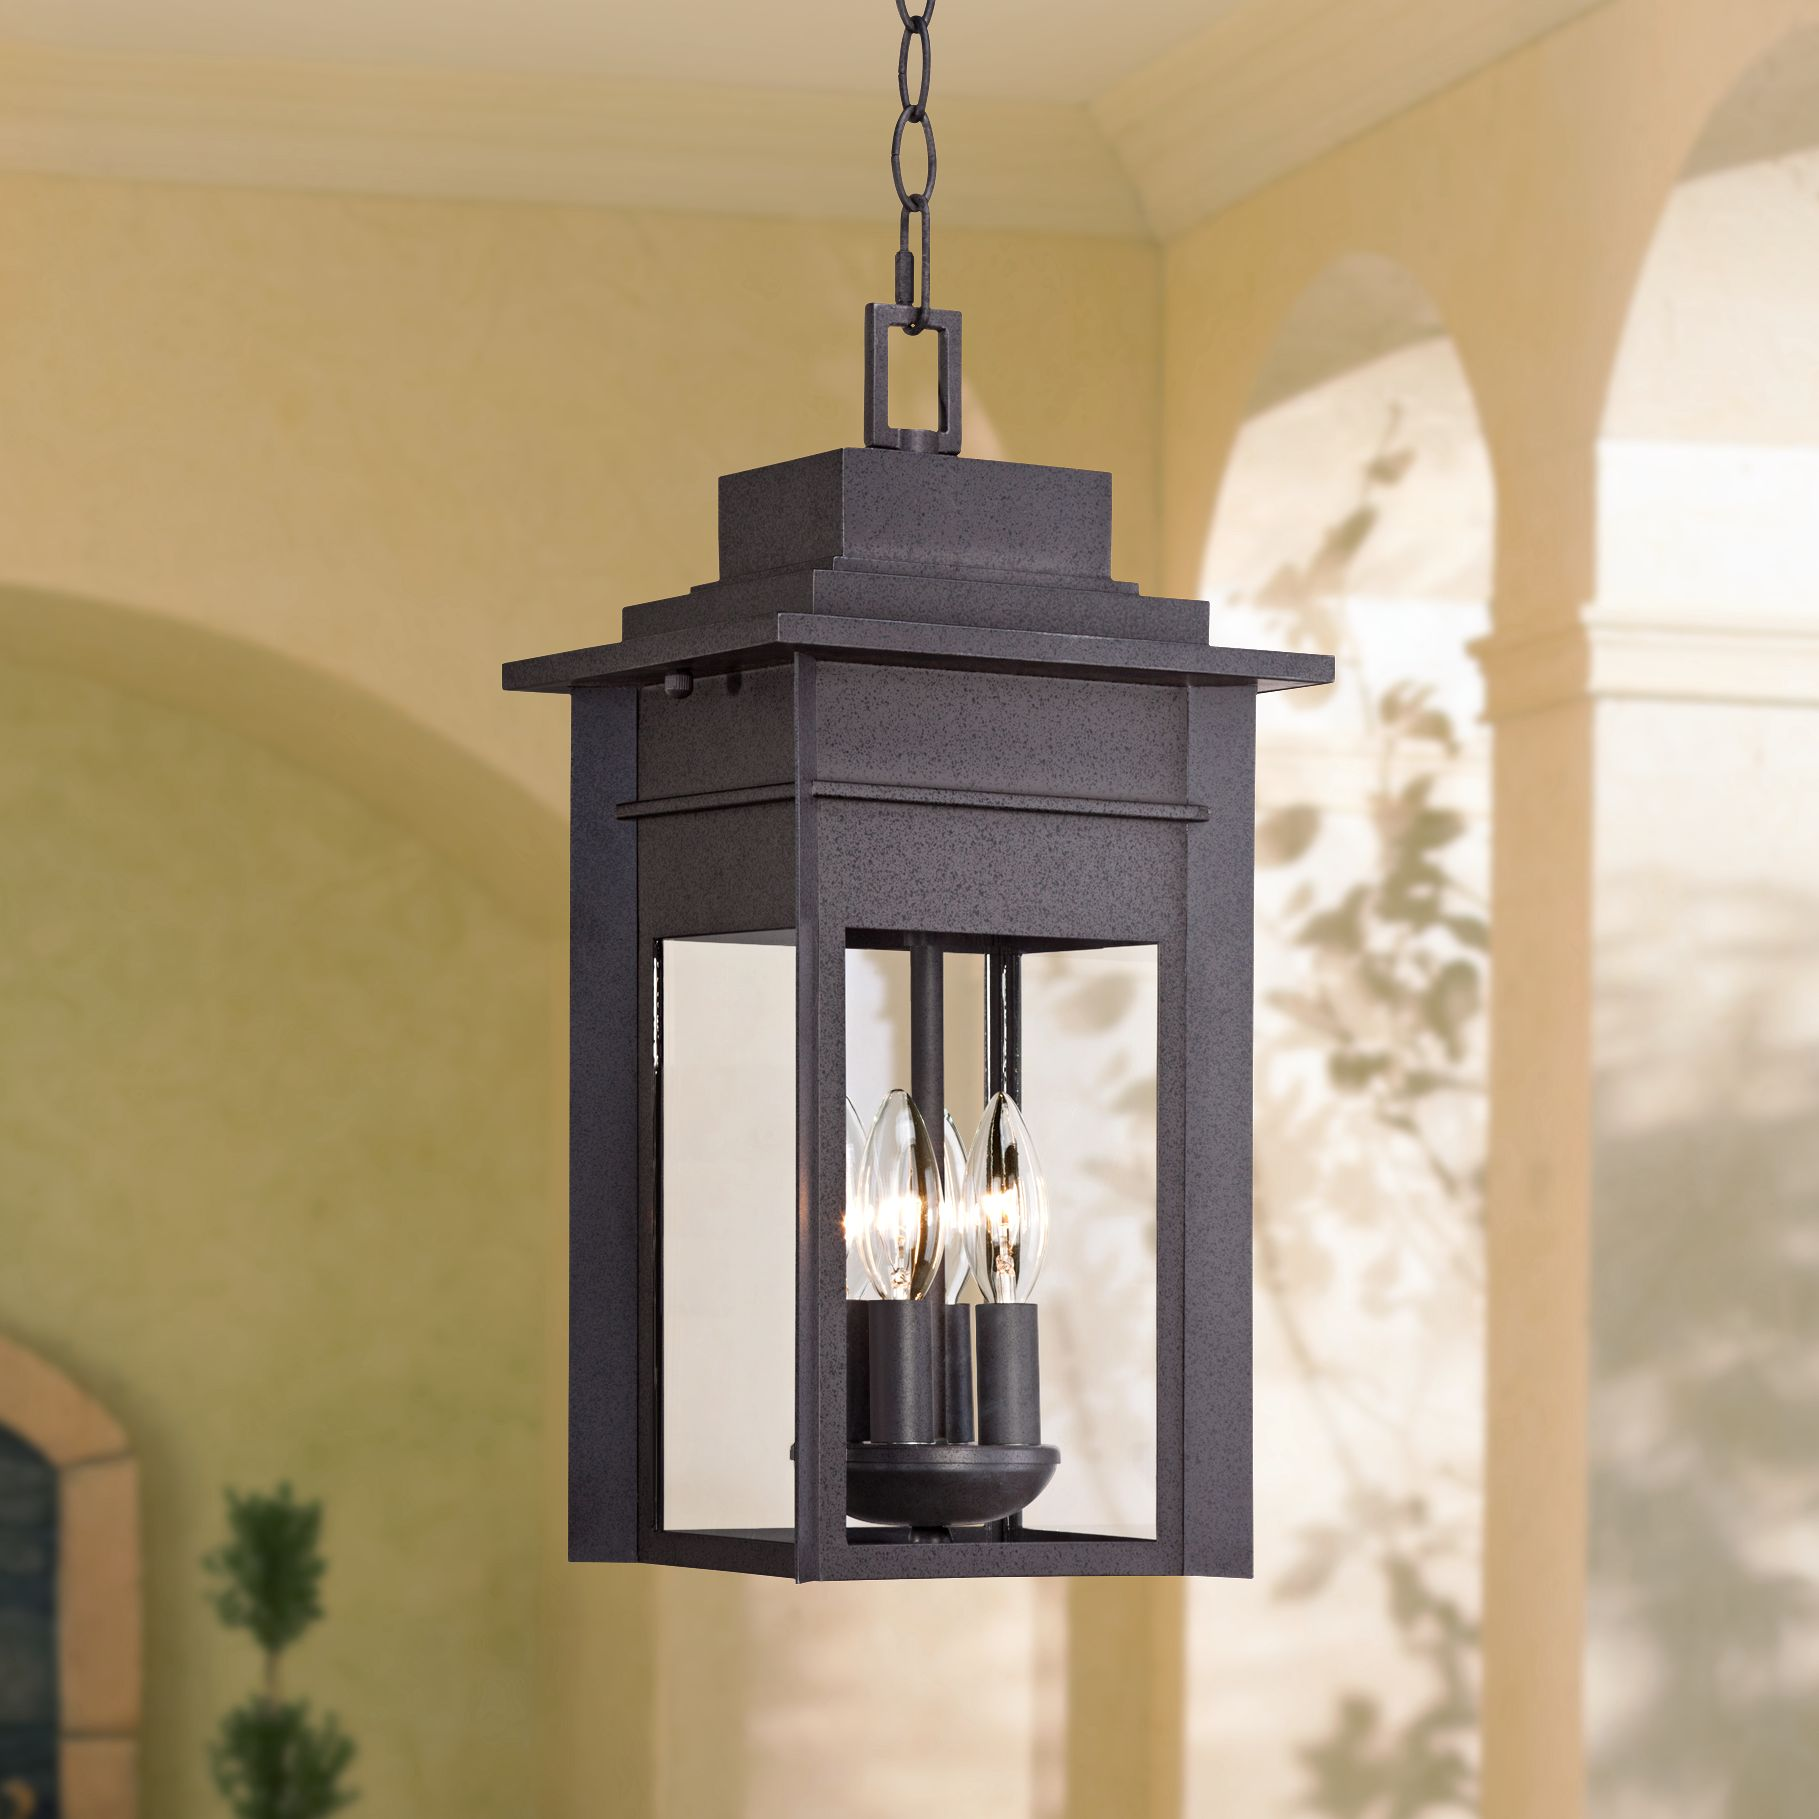 """Franklin Iron Works Outdoor Ceiling Light Hanging Lantern Black Specked Gray 17 1 2"""" Clear Glass for... by Franklin Iron Works"""